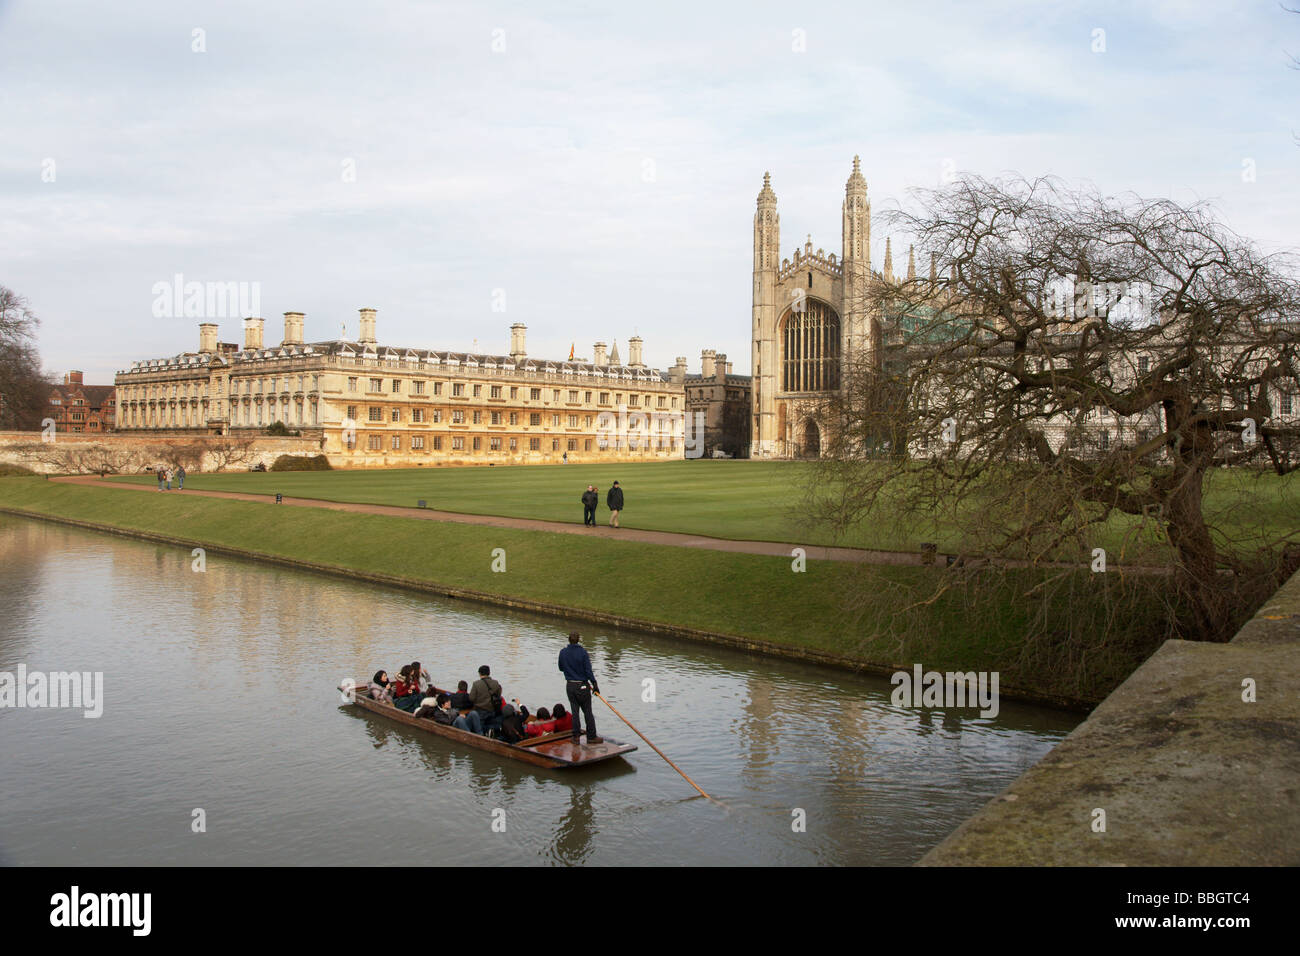 England;Cambridge;Punting on the River Cam;Clare College 1326 AD on the left,King's College Chapel 1441 AD on - Stock Image